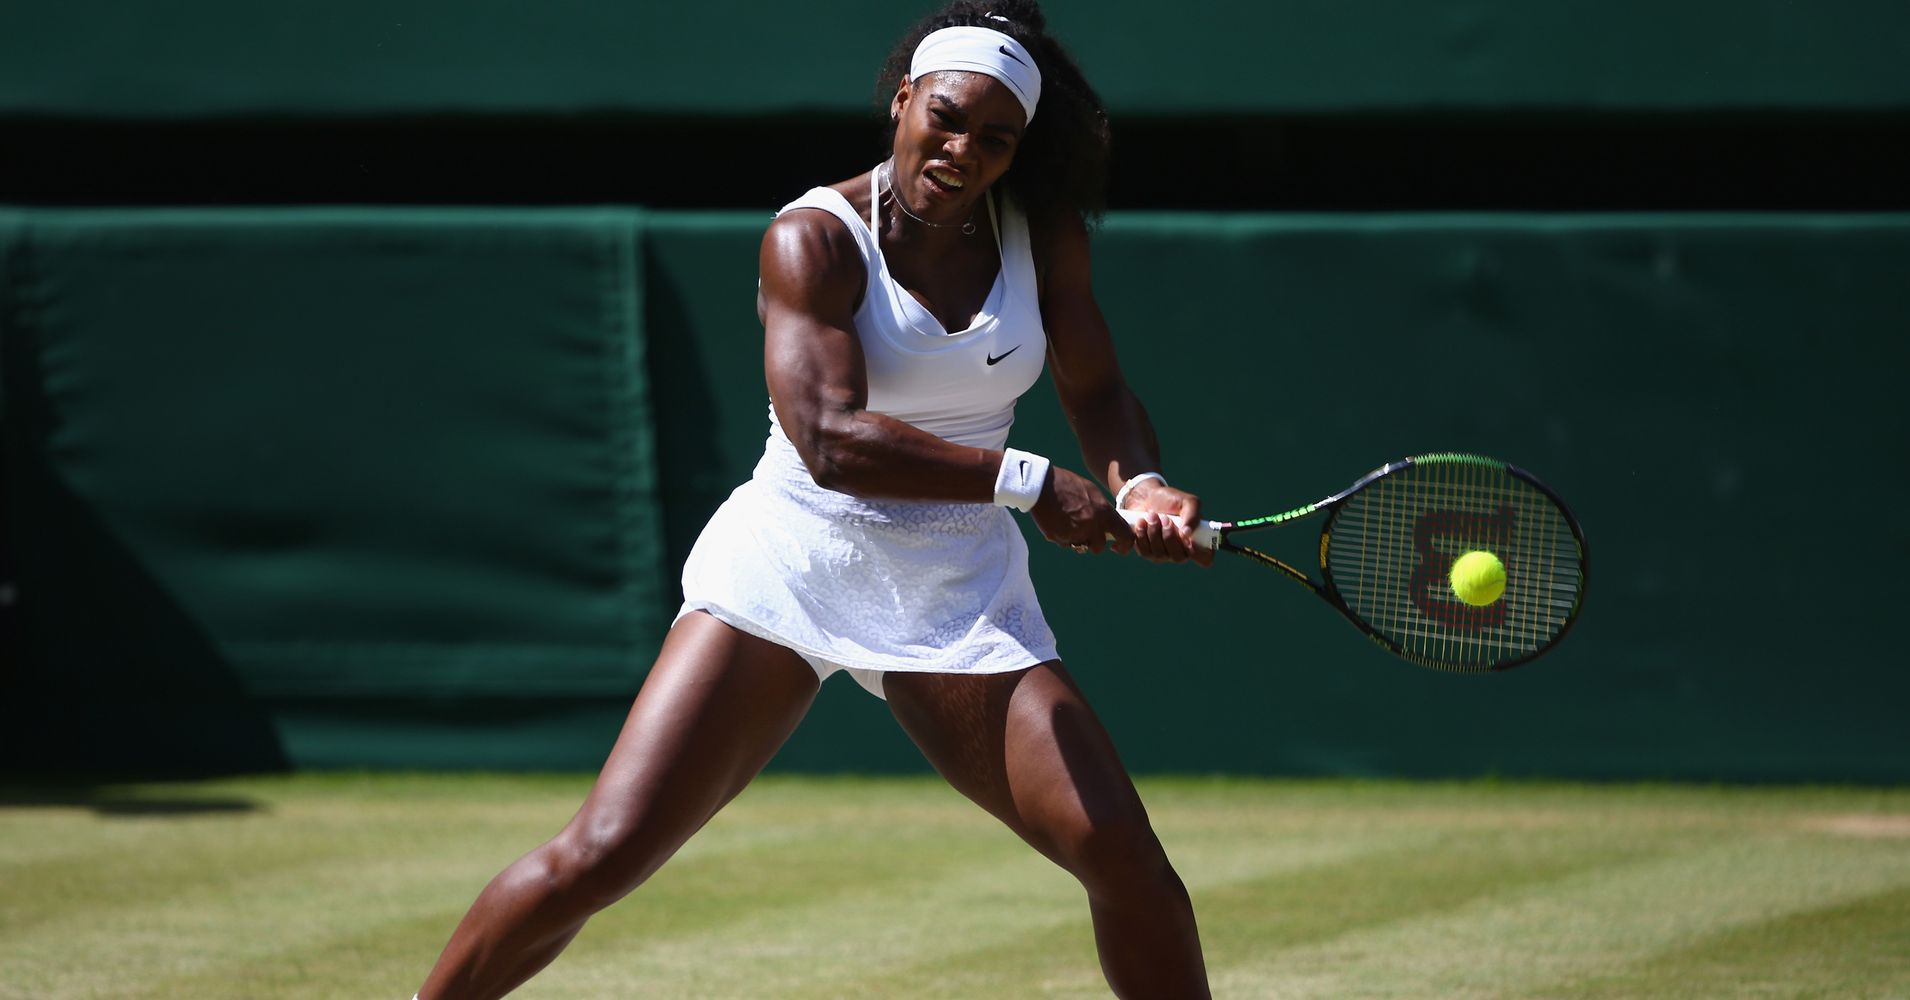 When we attack serena williams body its really about her when we attack serena williams body its really about her blackness huffpost buycottarizona